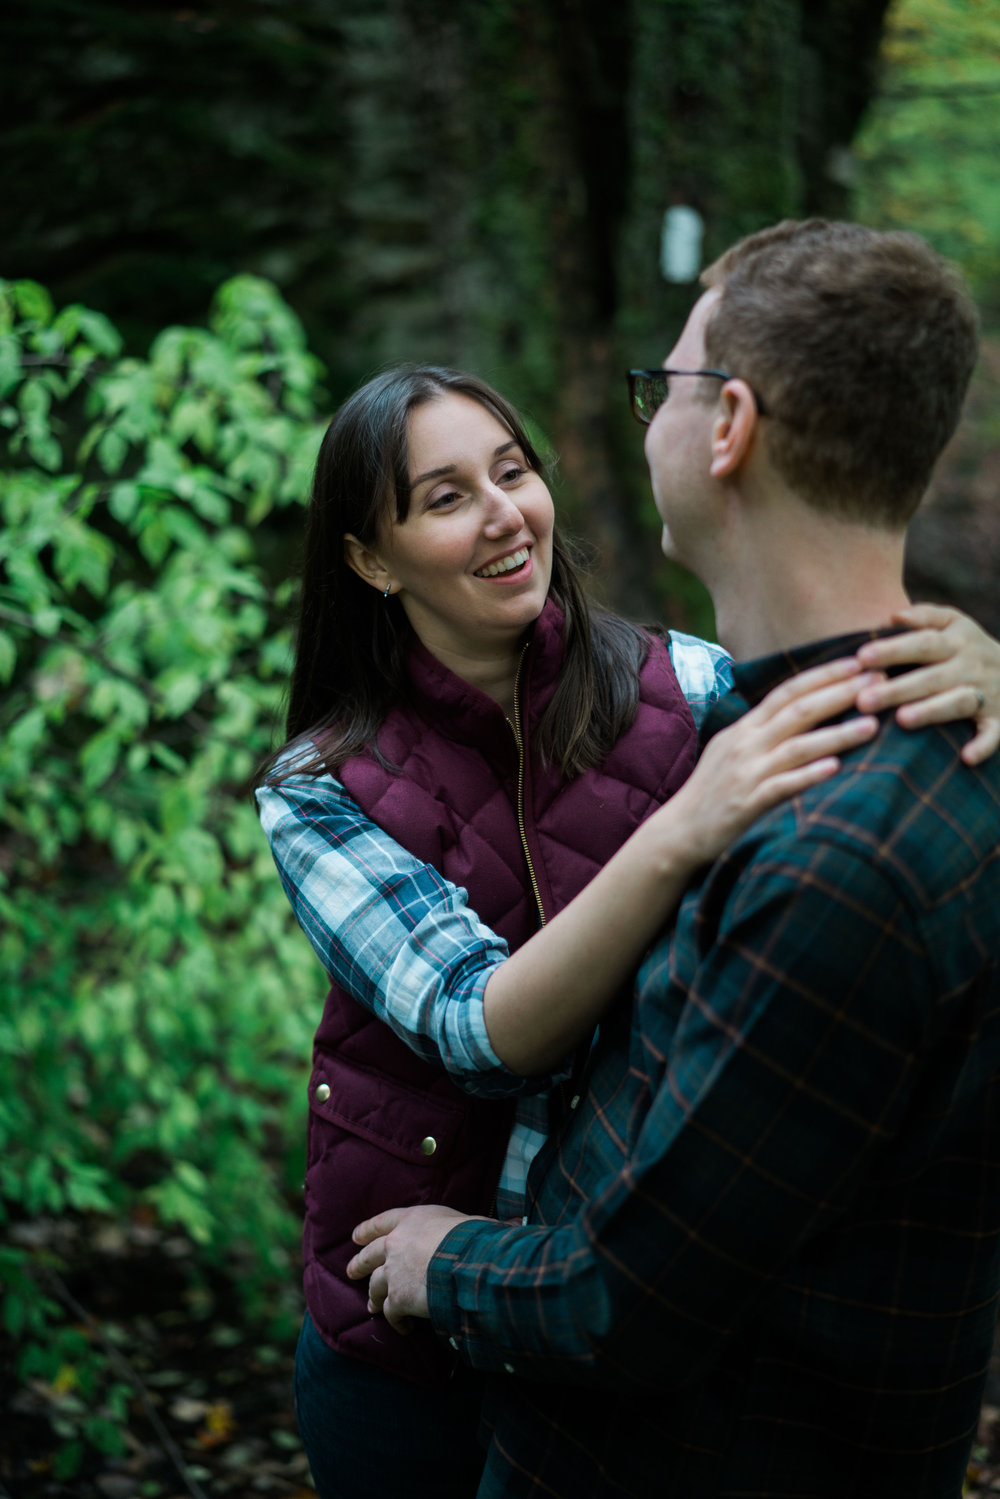 Jessica and JR Engagement Photography by Stefan Ludwig at Rock City State Park in Ellicottville, NY-41.jpg